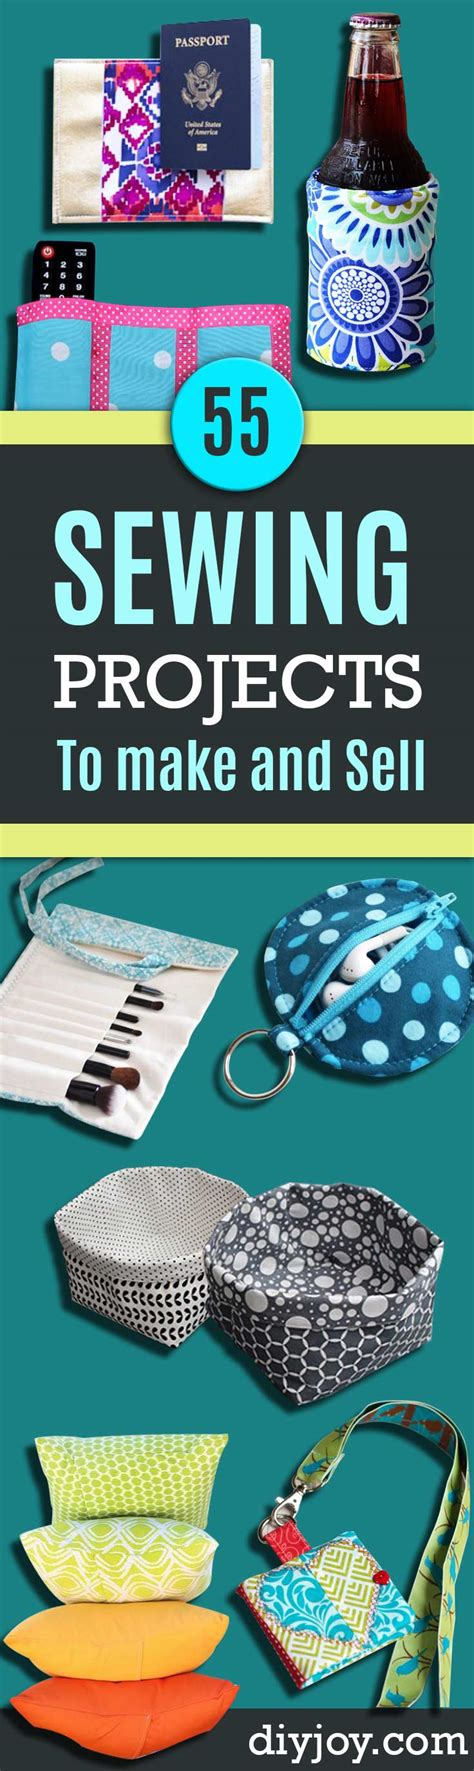 diy projects to make money 55 sewing projects to make and sell